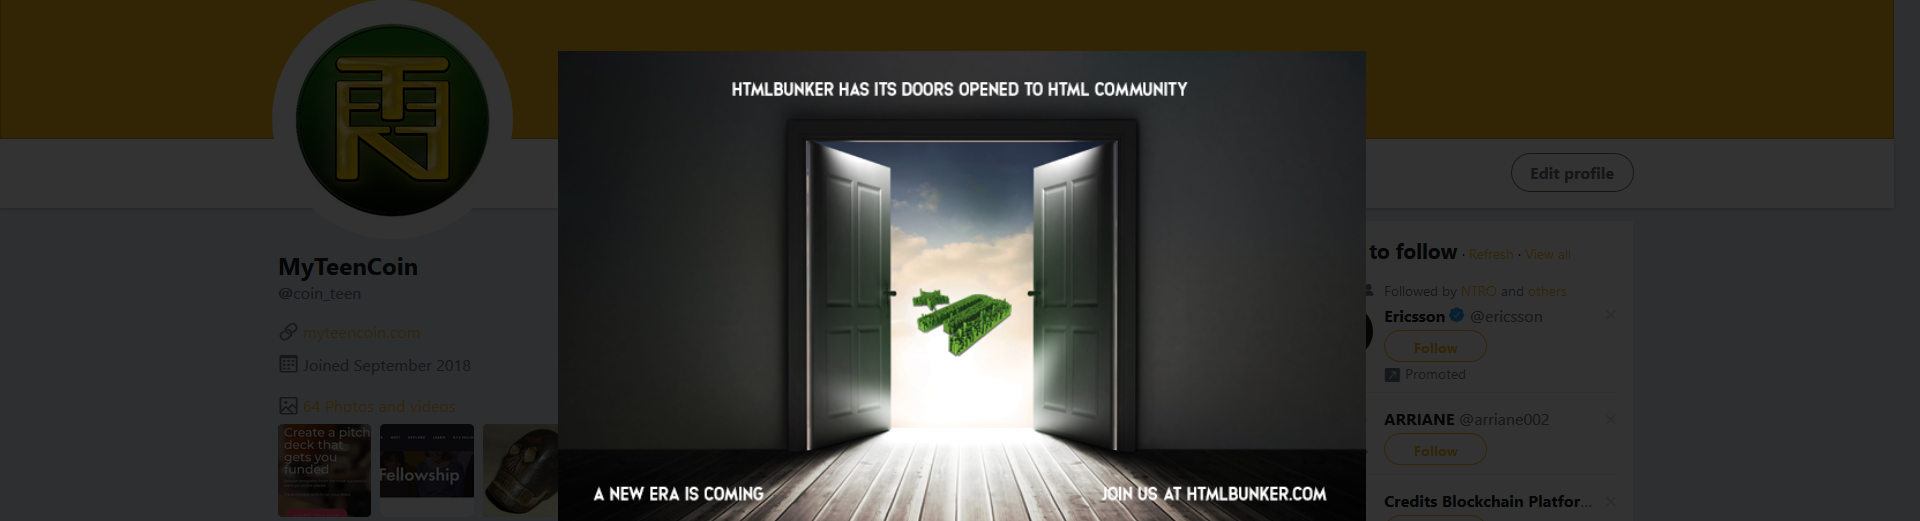 #htmlbunker adds Teen Coin to Exchange